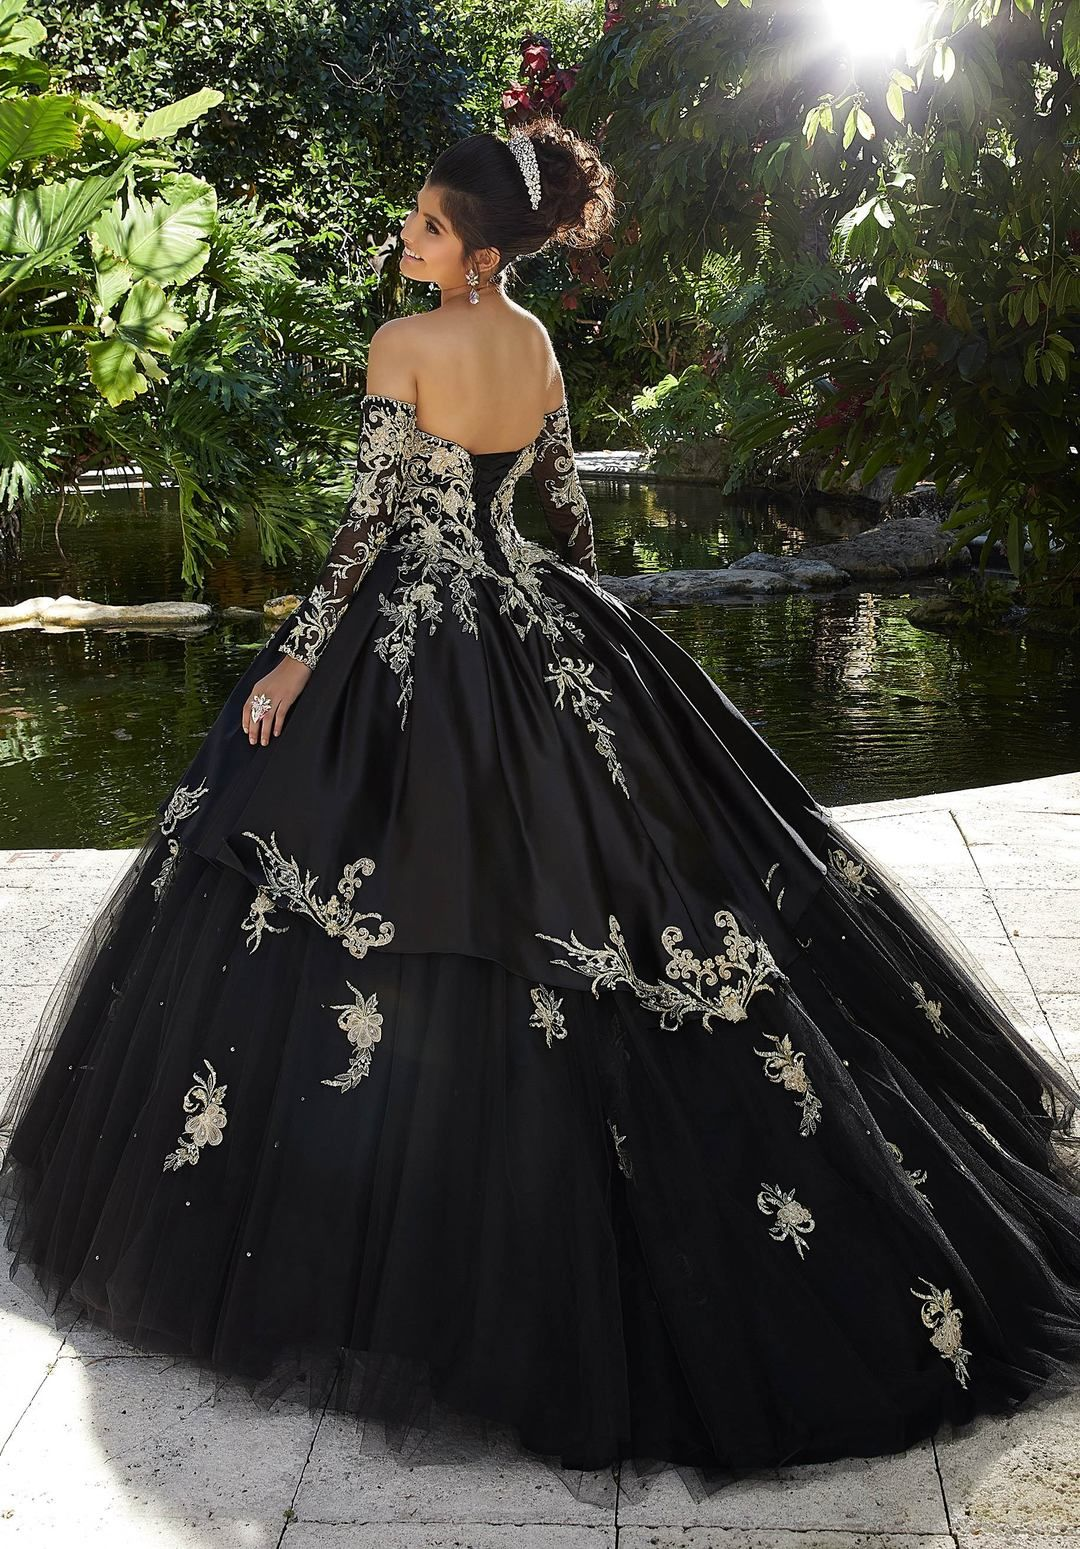 Embroidered Sweetheart Quinceanera Dress By Mori Lee Vizcaya 89248 Quincenera Dresses Ball Dresses Black Wedding Gowns [ 1549 x 1080 Pixel ]